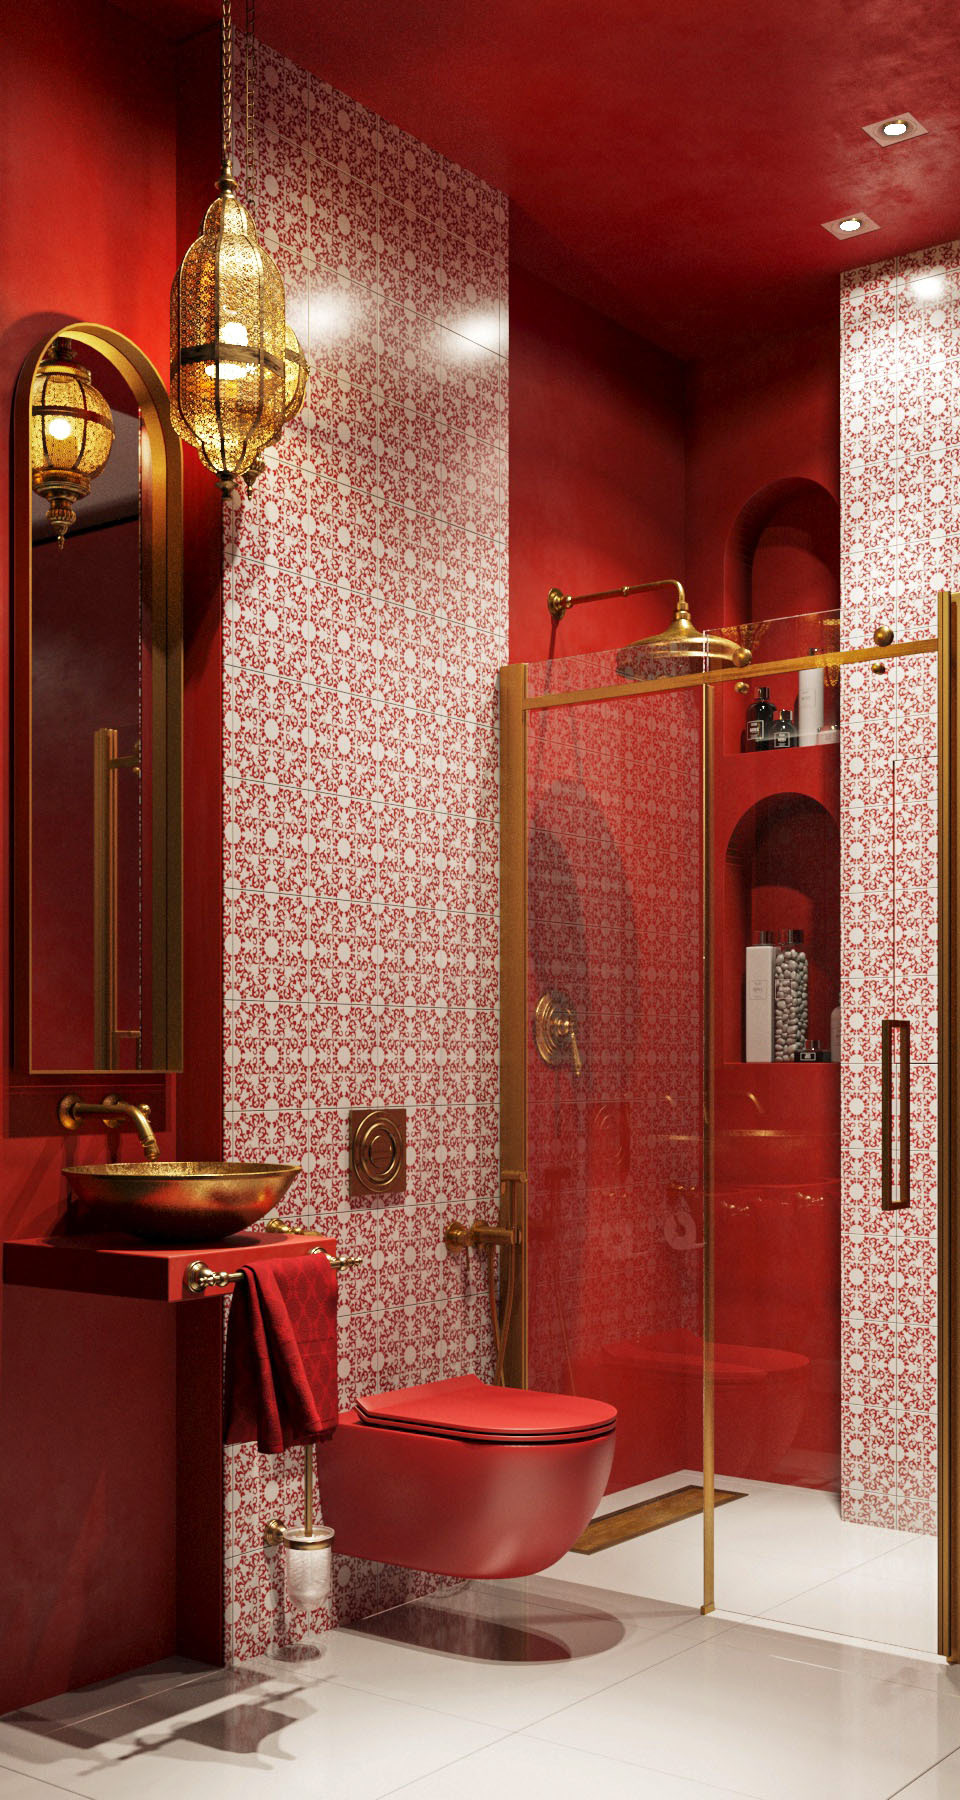 bathroom in moroccan style on behance